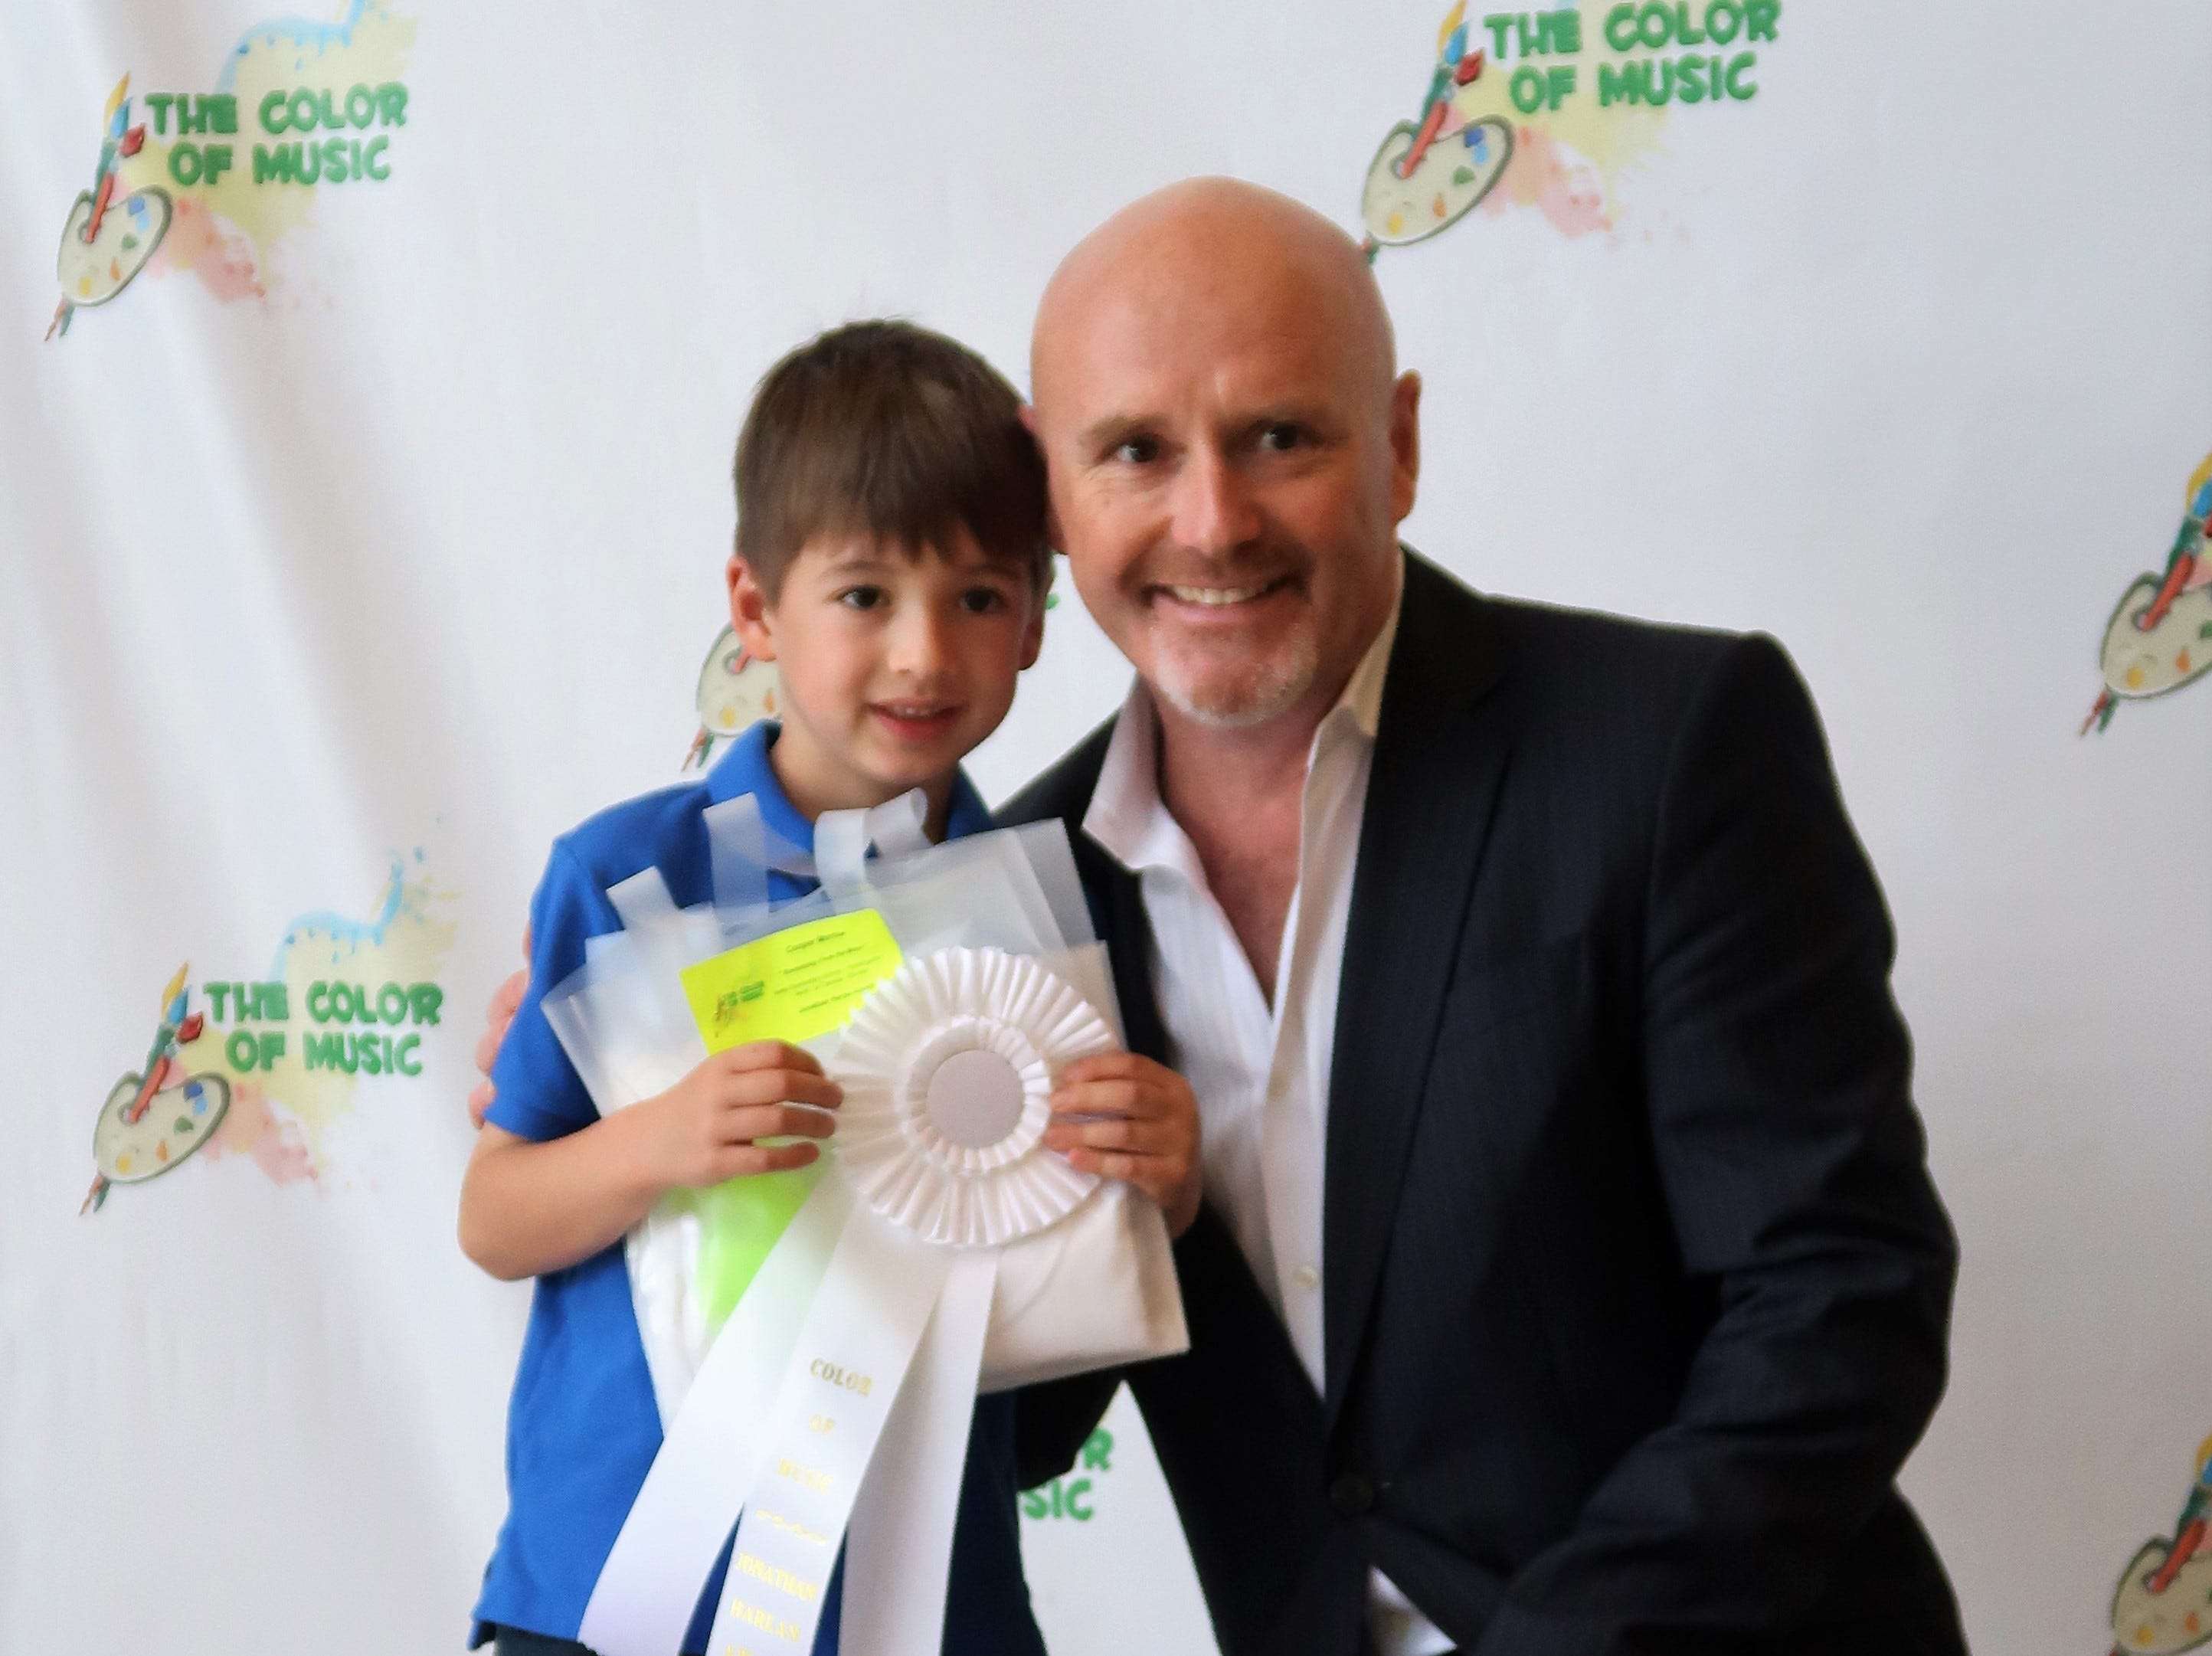 Cooper Morrow smiles next to Jackson Symphony Conductor Peter Shannon after receiving an award for his artwork at the 2019 Color of Music awards at the Carl Perkins Civic Center in Jackson on Saturday, April 13.